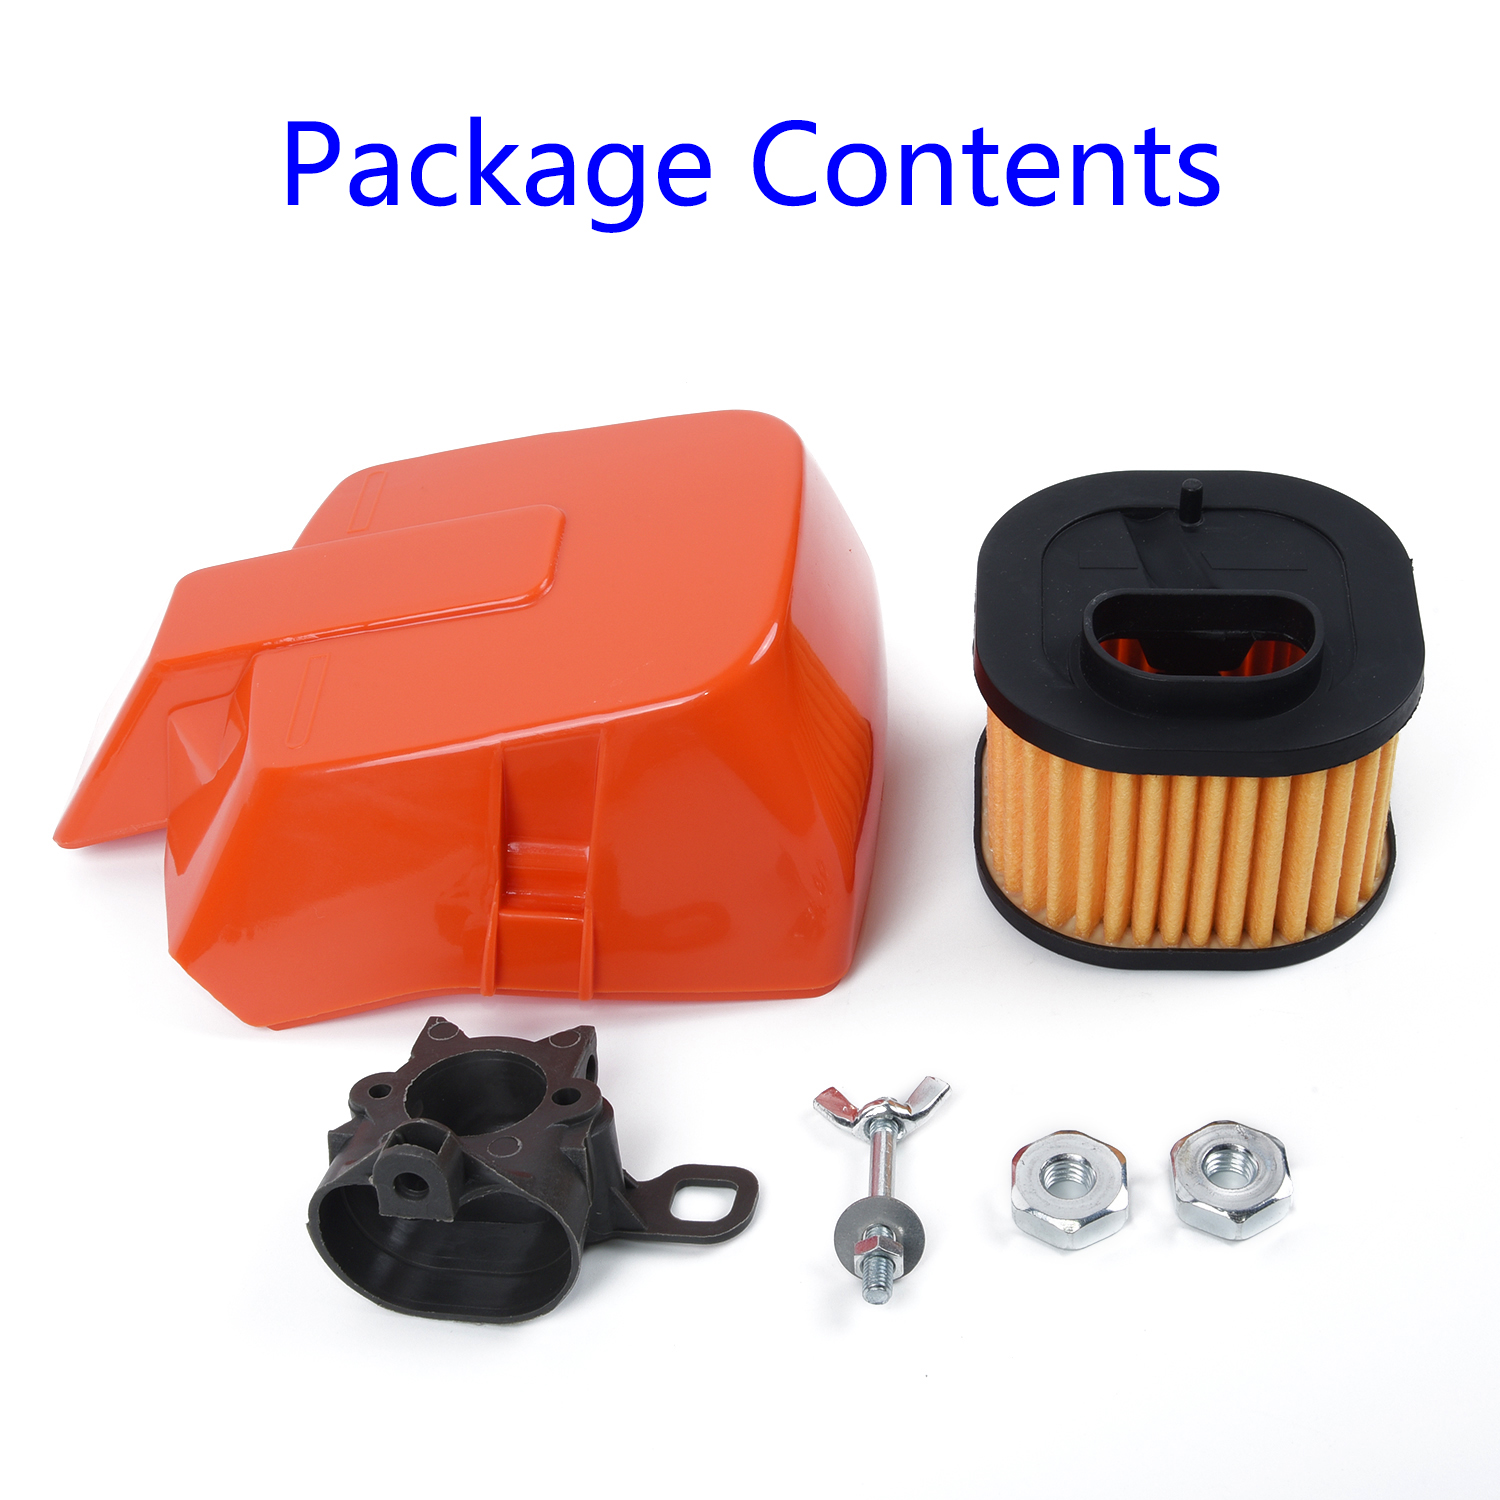 HD Top Air Filter Cover Kit For Husqvarna 362 Special 371 372 XP XPW 503817701